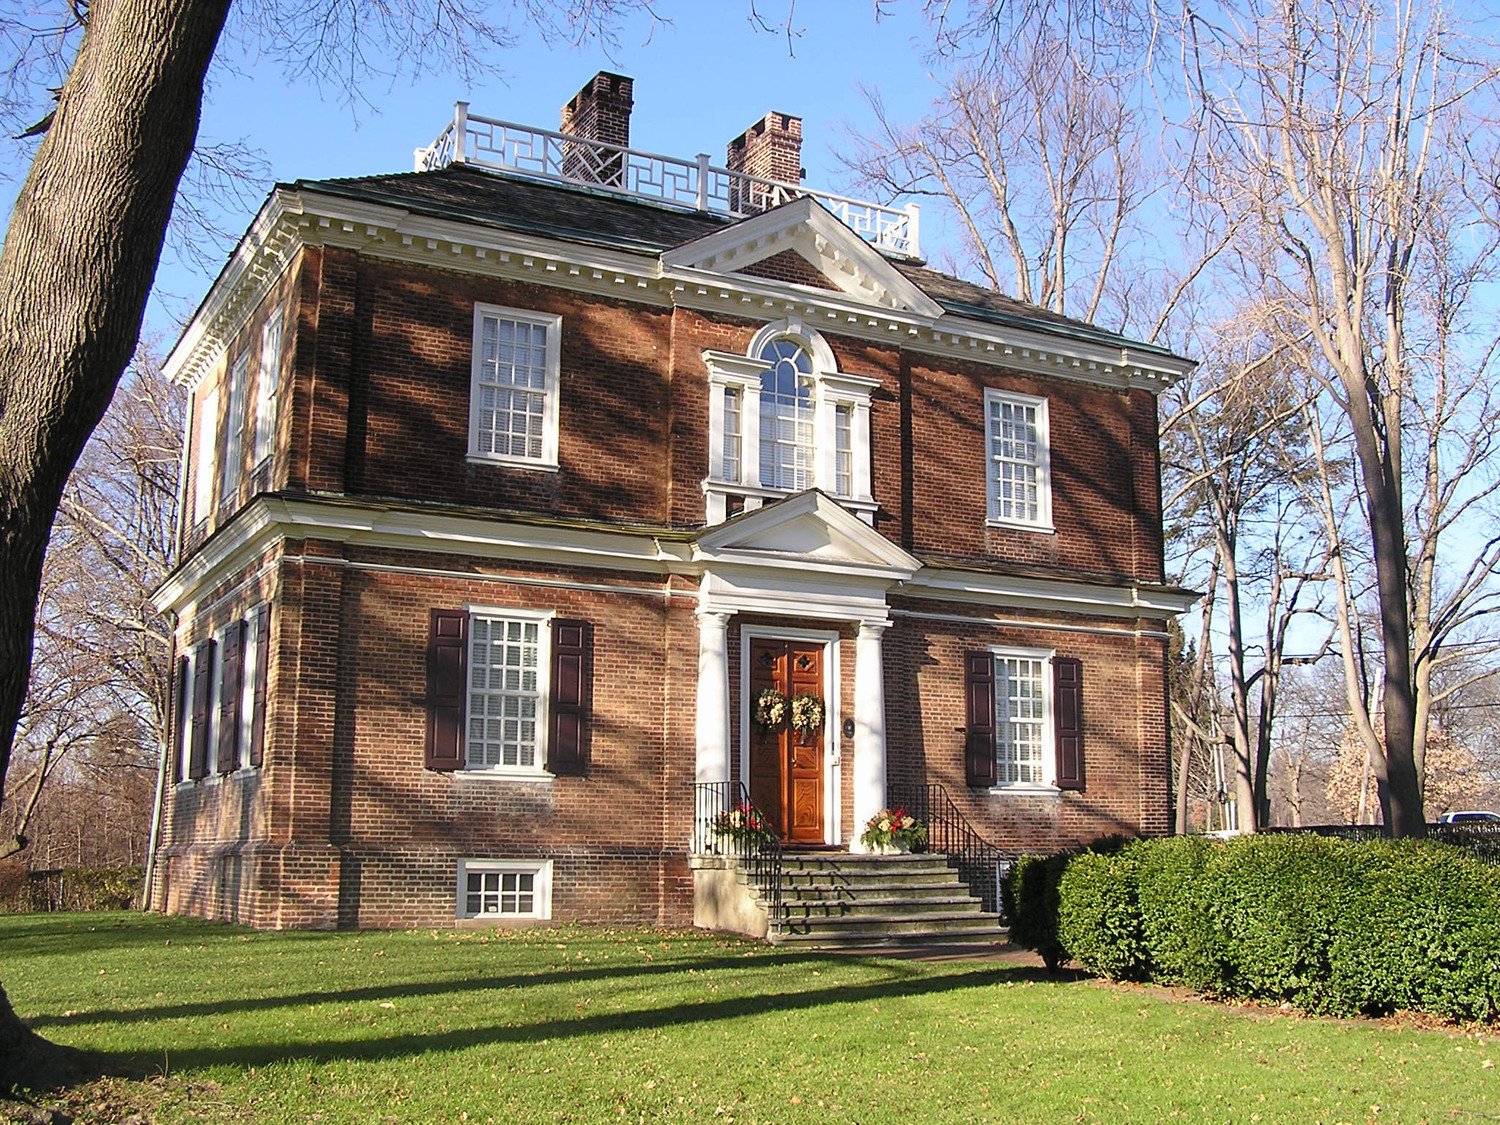 Woodford Mansion, completed in 1758 and expanded in 1772, sits in Philadelphia's Fairmount Park and is now open as a historic house museum.